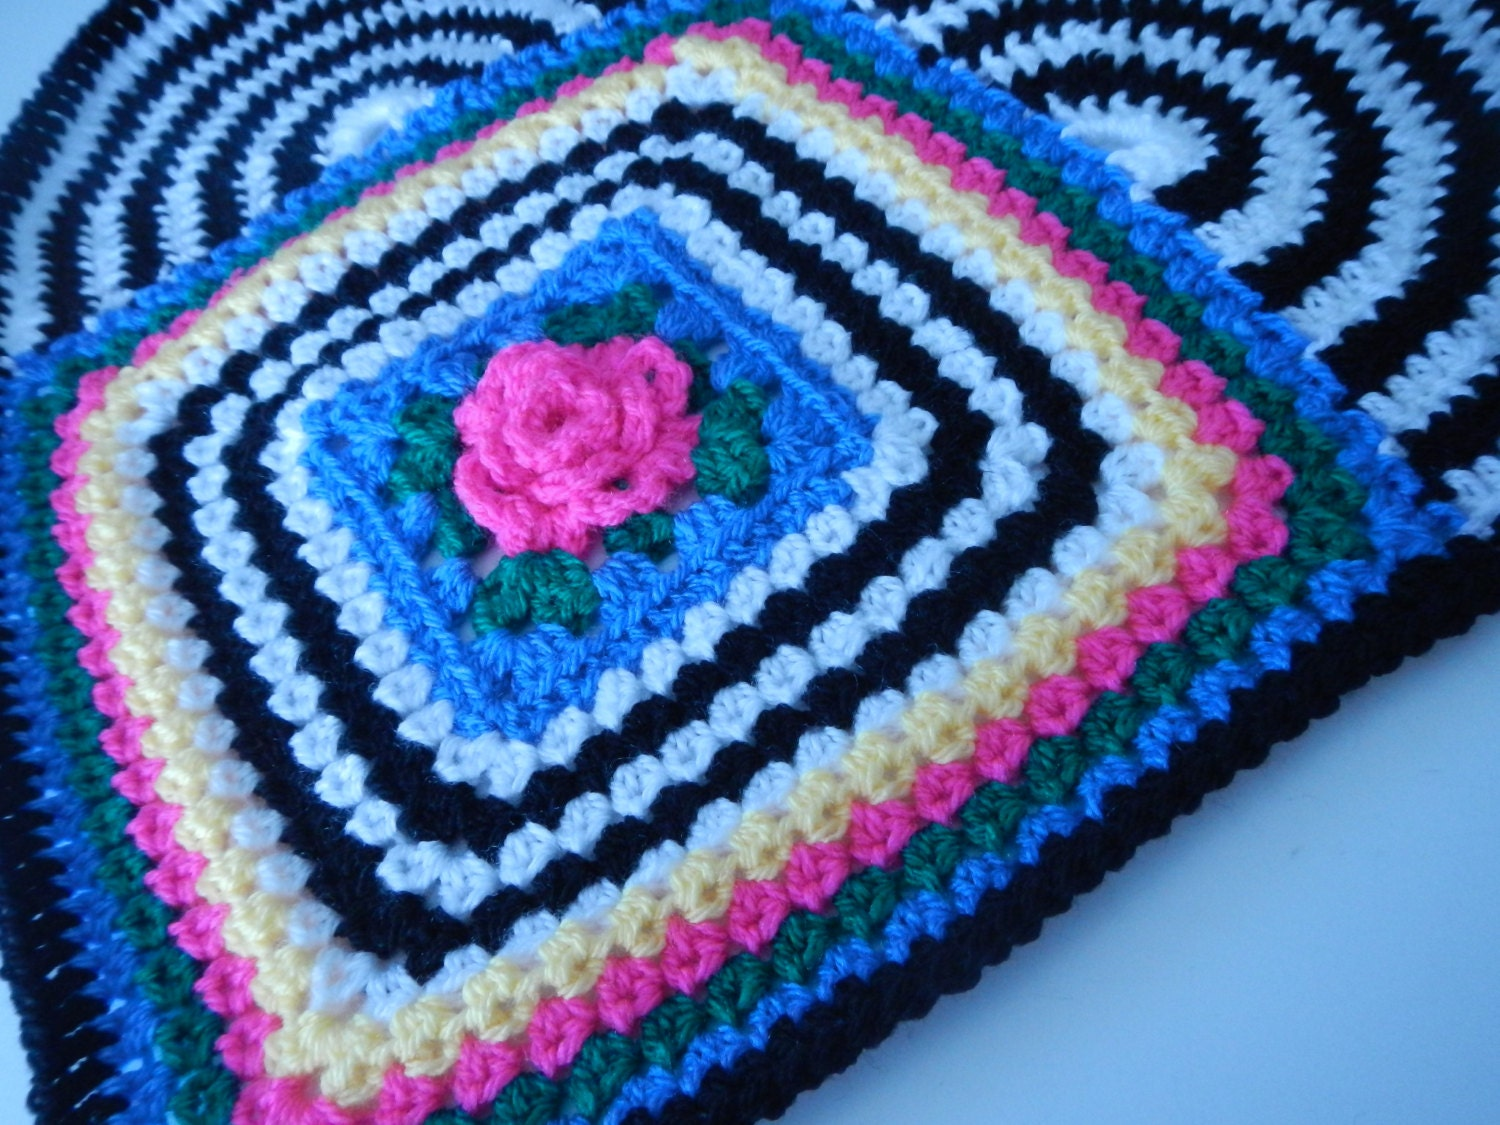 Crocheted Rose Heart Pillow Pattern With Granny Rose Etsy